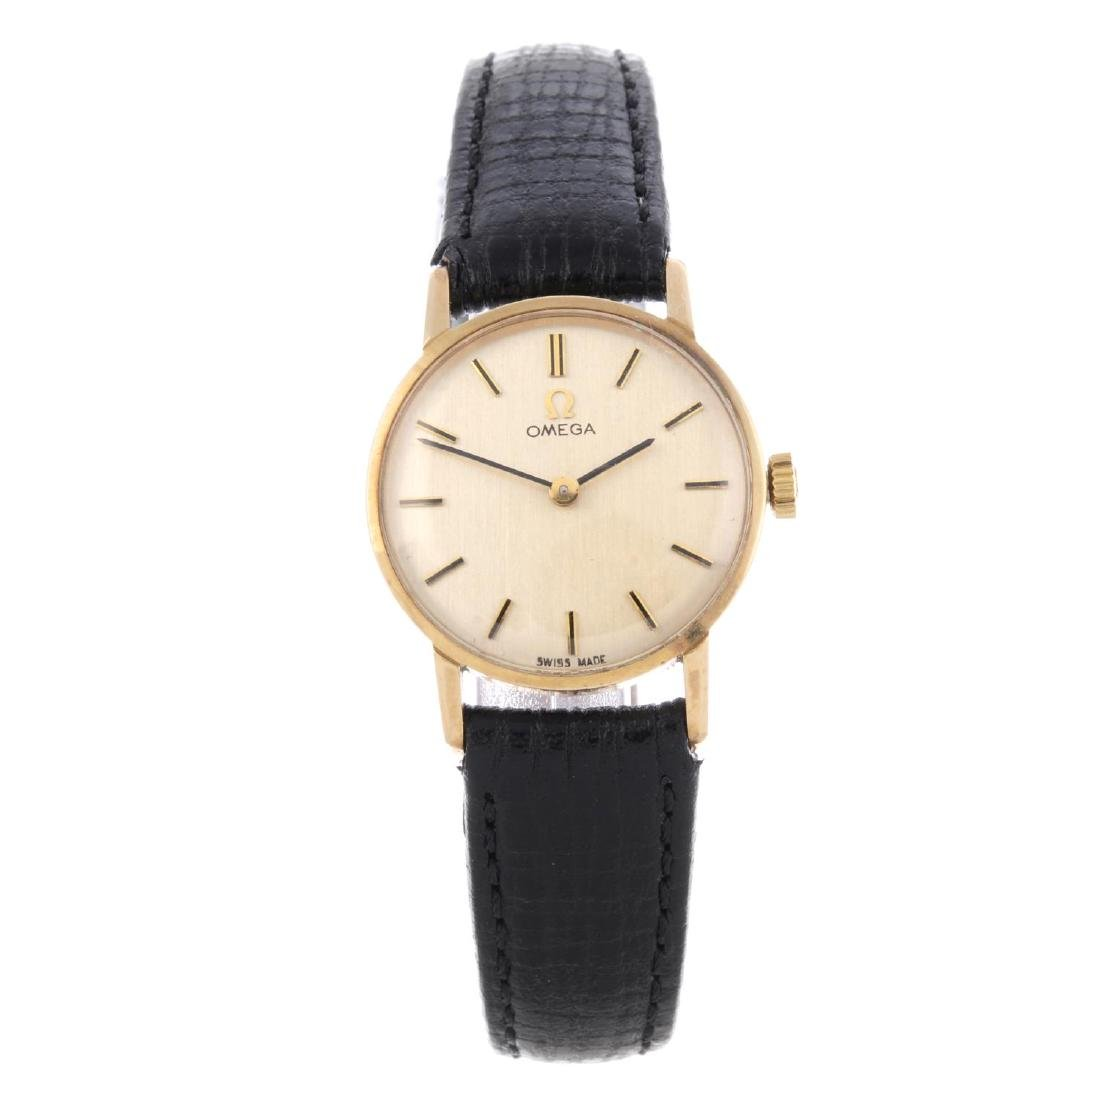 OMEGA - a lady's wrist watch. 9ct yellow gold case,